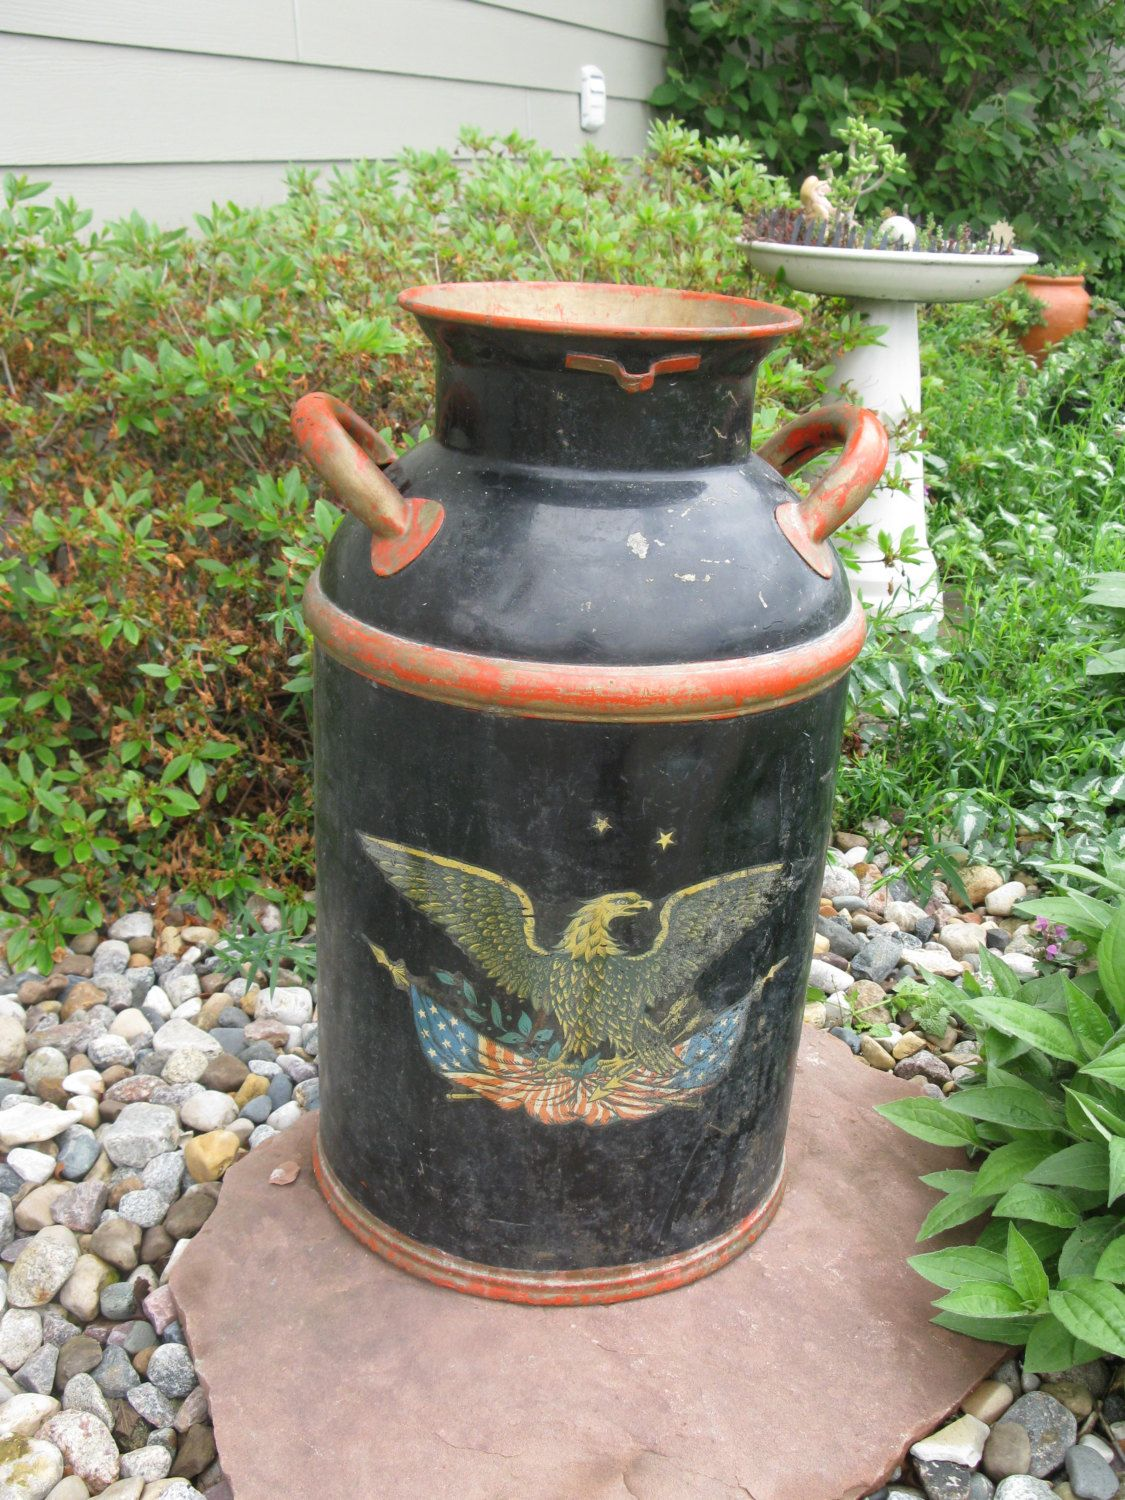 Large Metal Milk Can Bordens Cream Can Eagle Decal Painted Black Red Vintage Storage Container Garden Milk Cans Vintage Storage Container Old Milk Cans